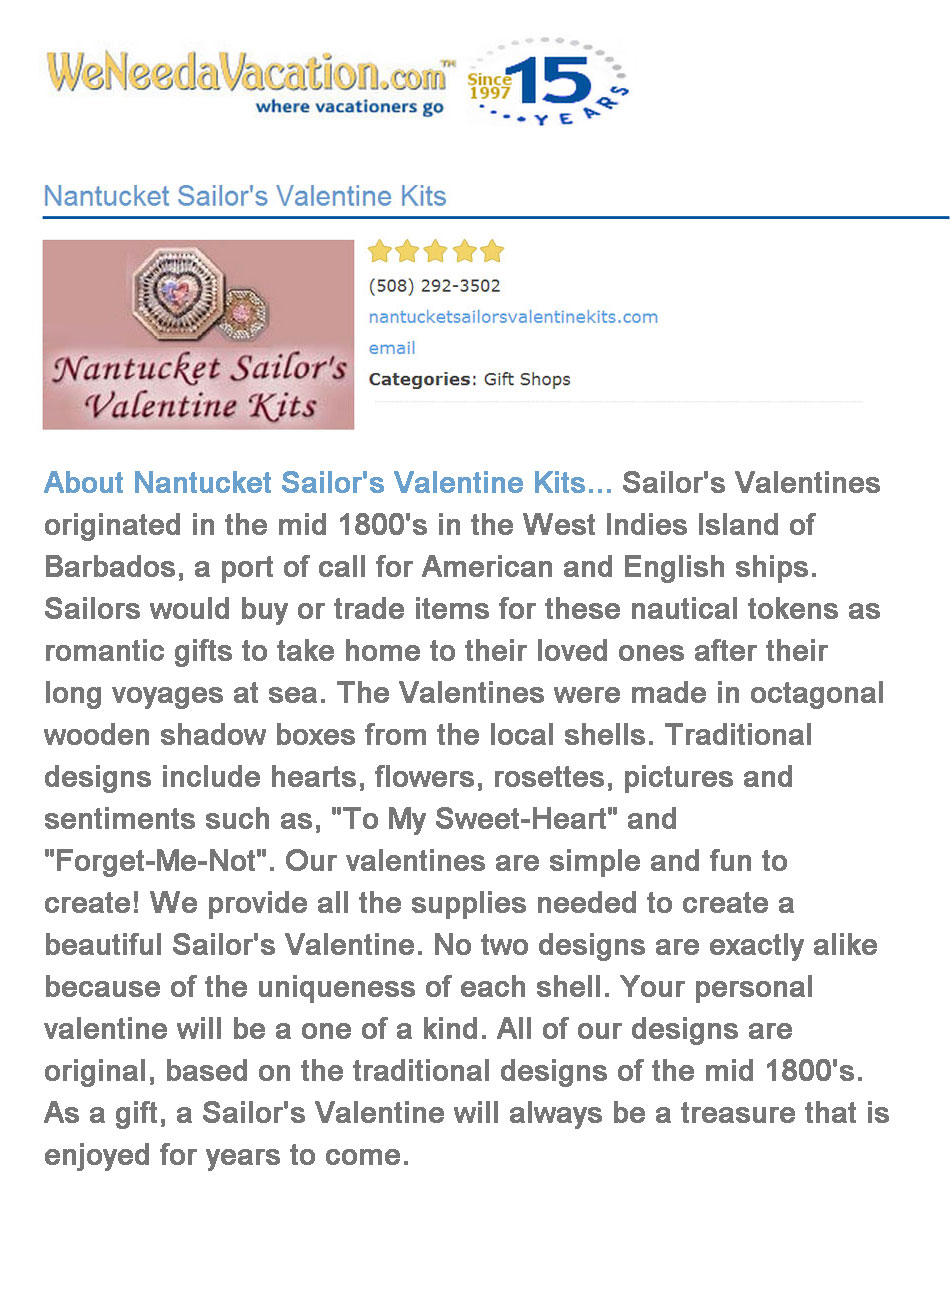 2009 We Need A Vacation Nantucket Sailors Valentines